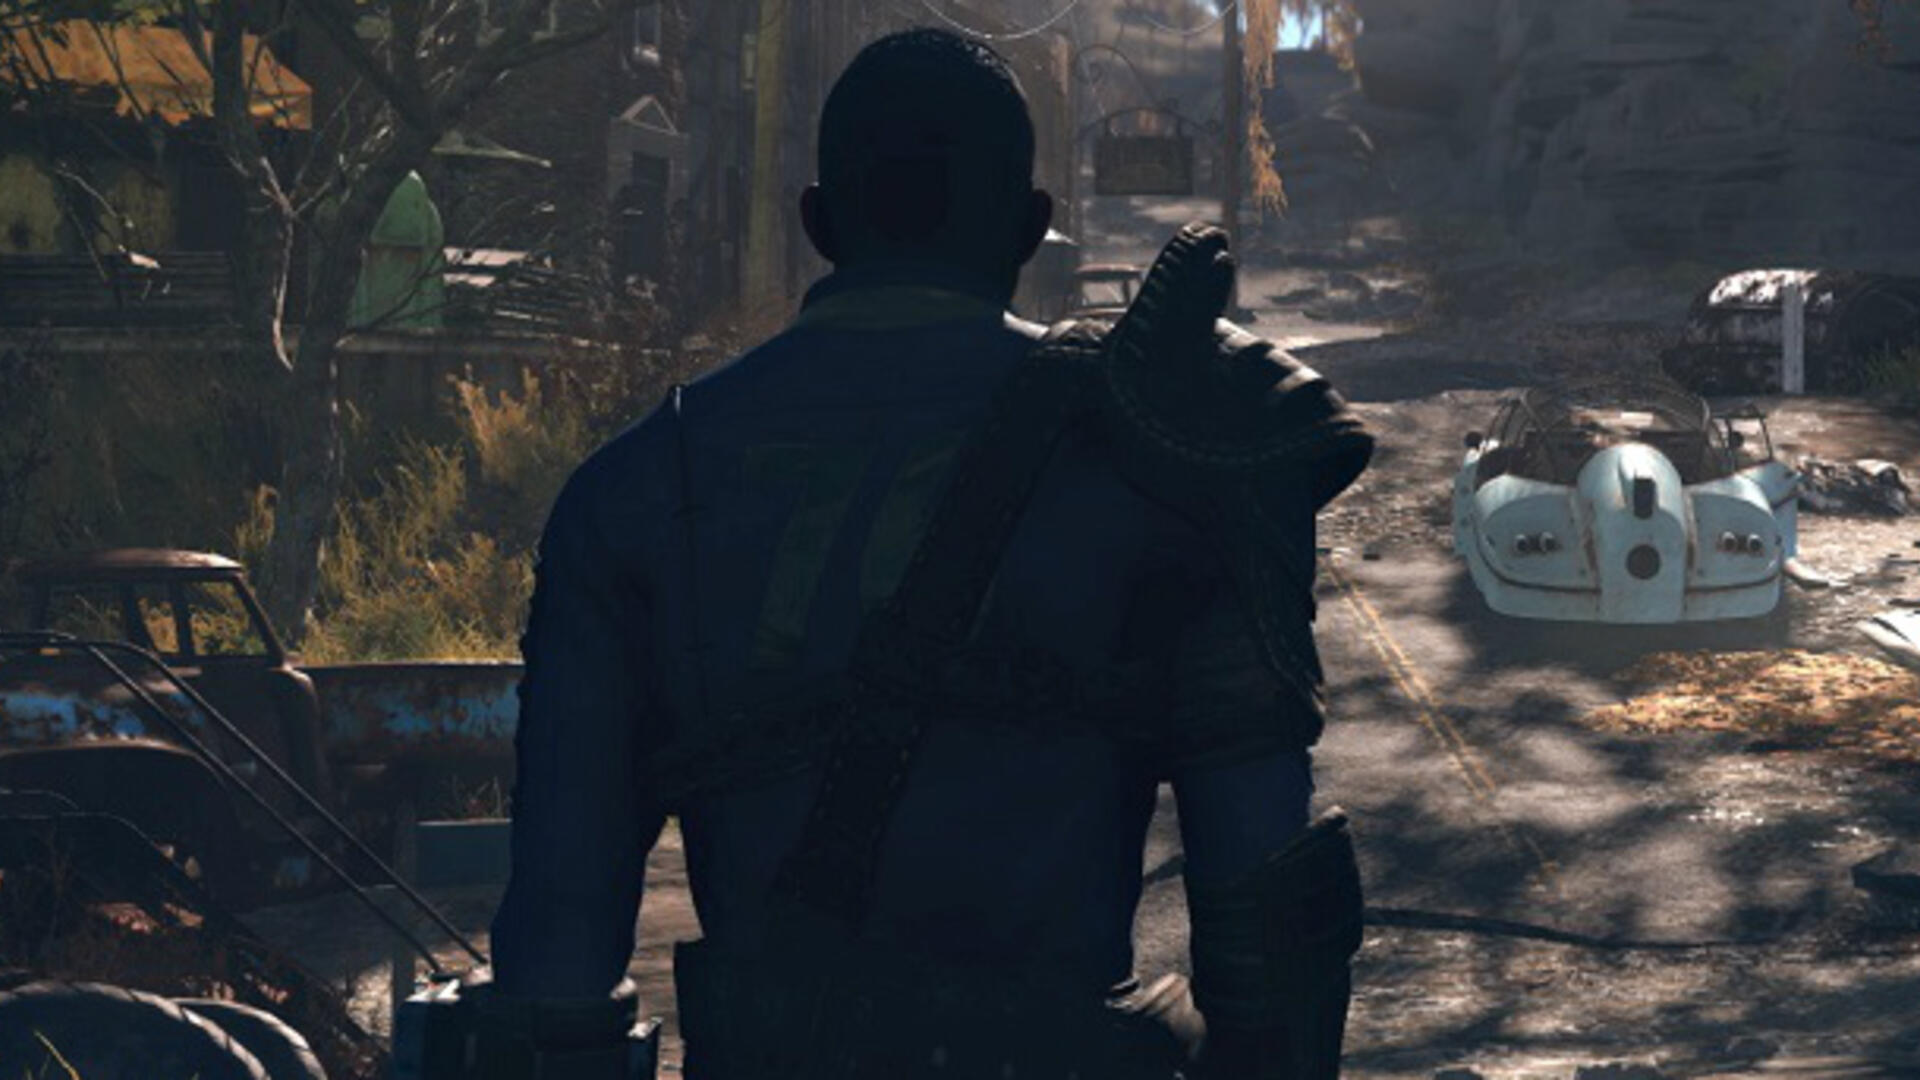 Fallout 76 Locks at 63fps to Prevent Speed Hacks